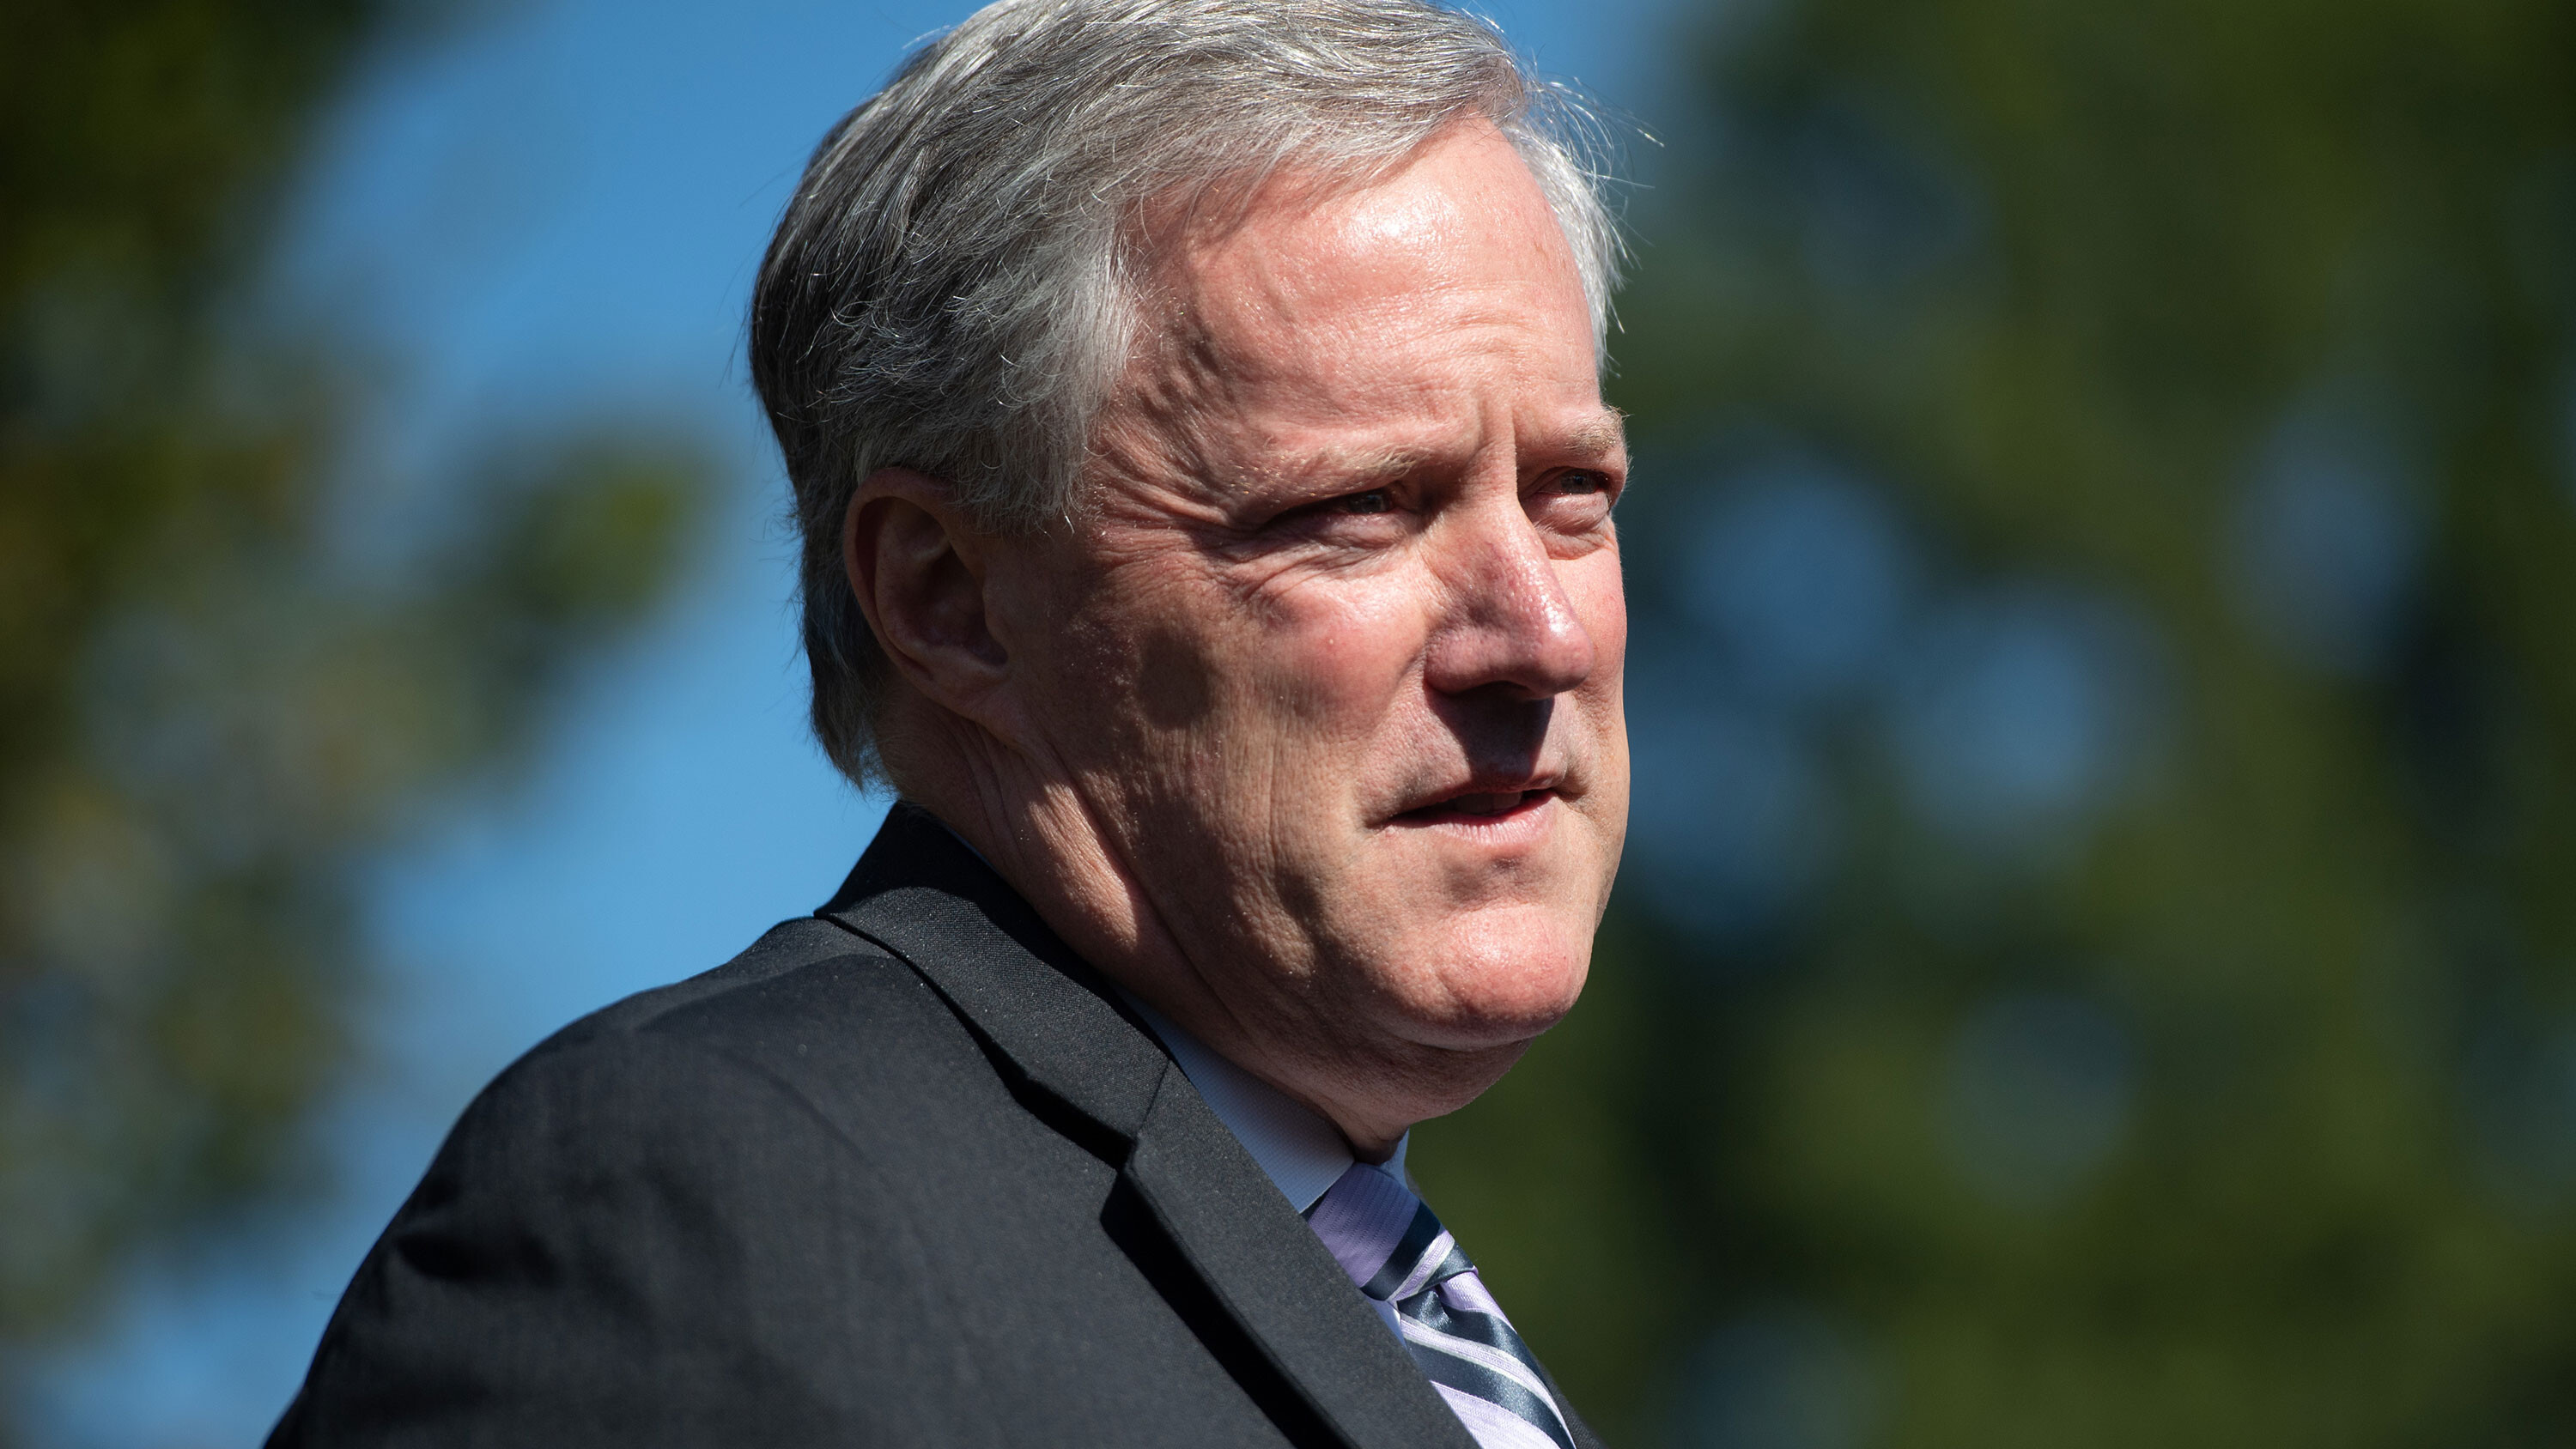 Senate Judiciary chairman wants to interview former Trump chief of staff Mark Meadows